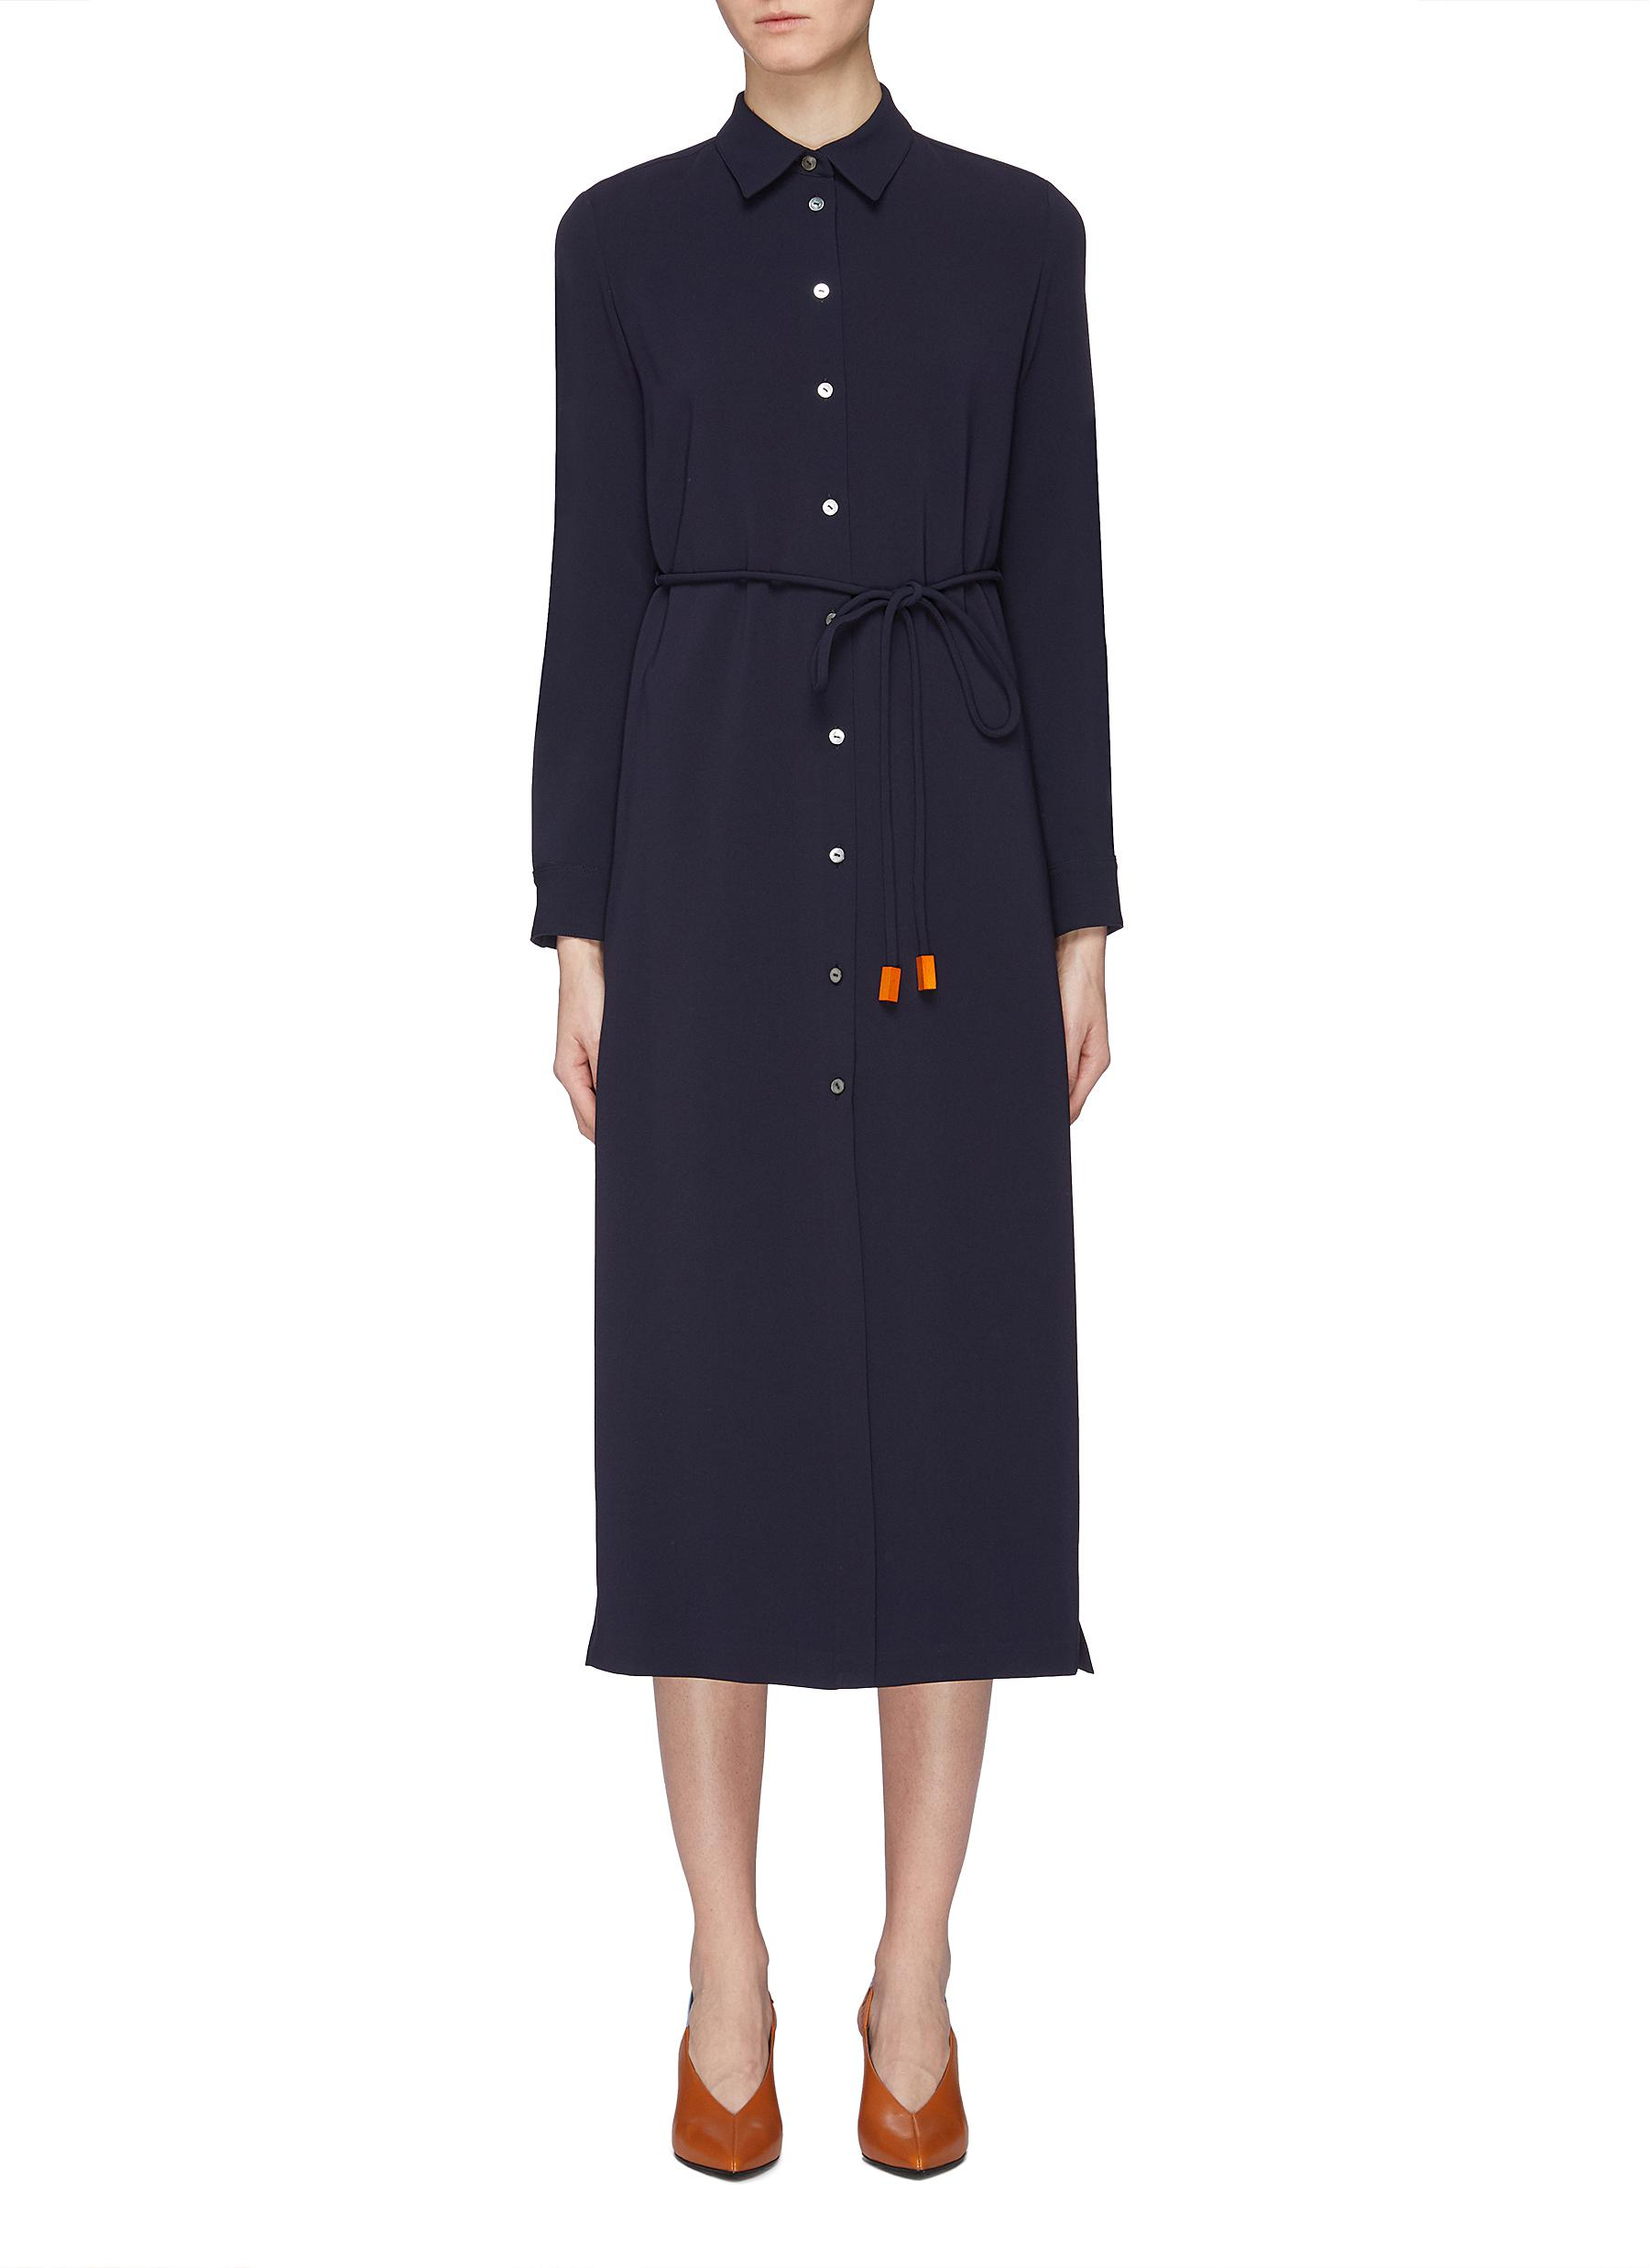 342cde709d2 Main View - Click To Enlarge - Theory - Belted crepe shirt dress